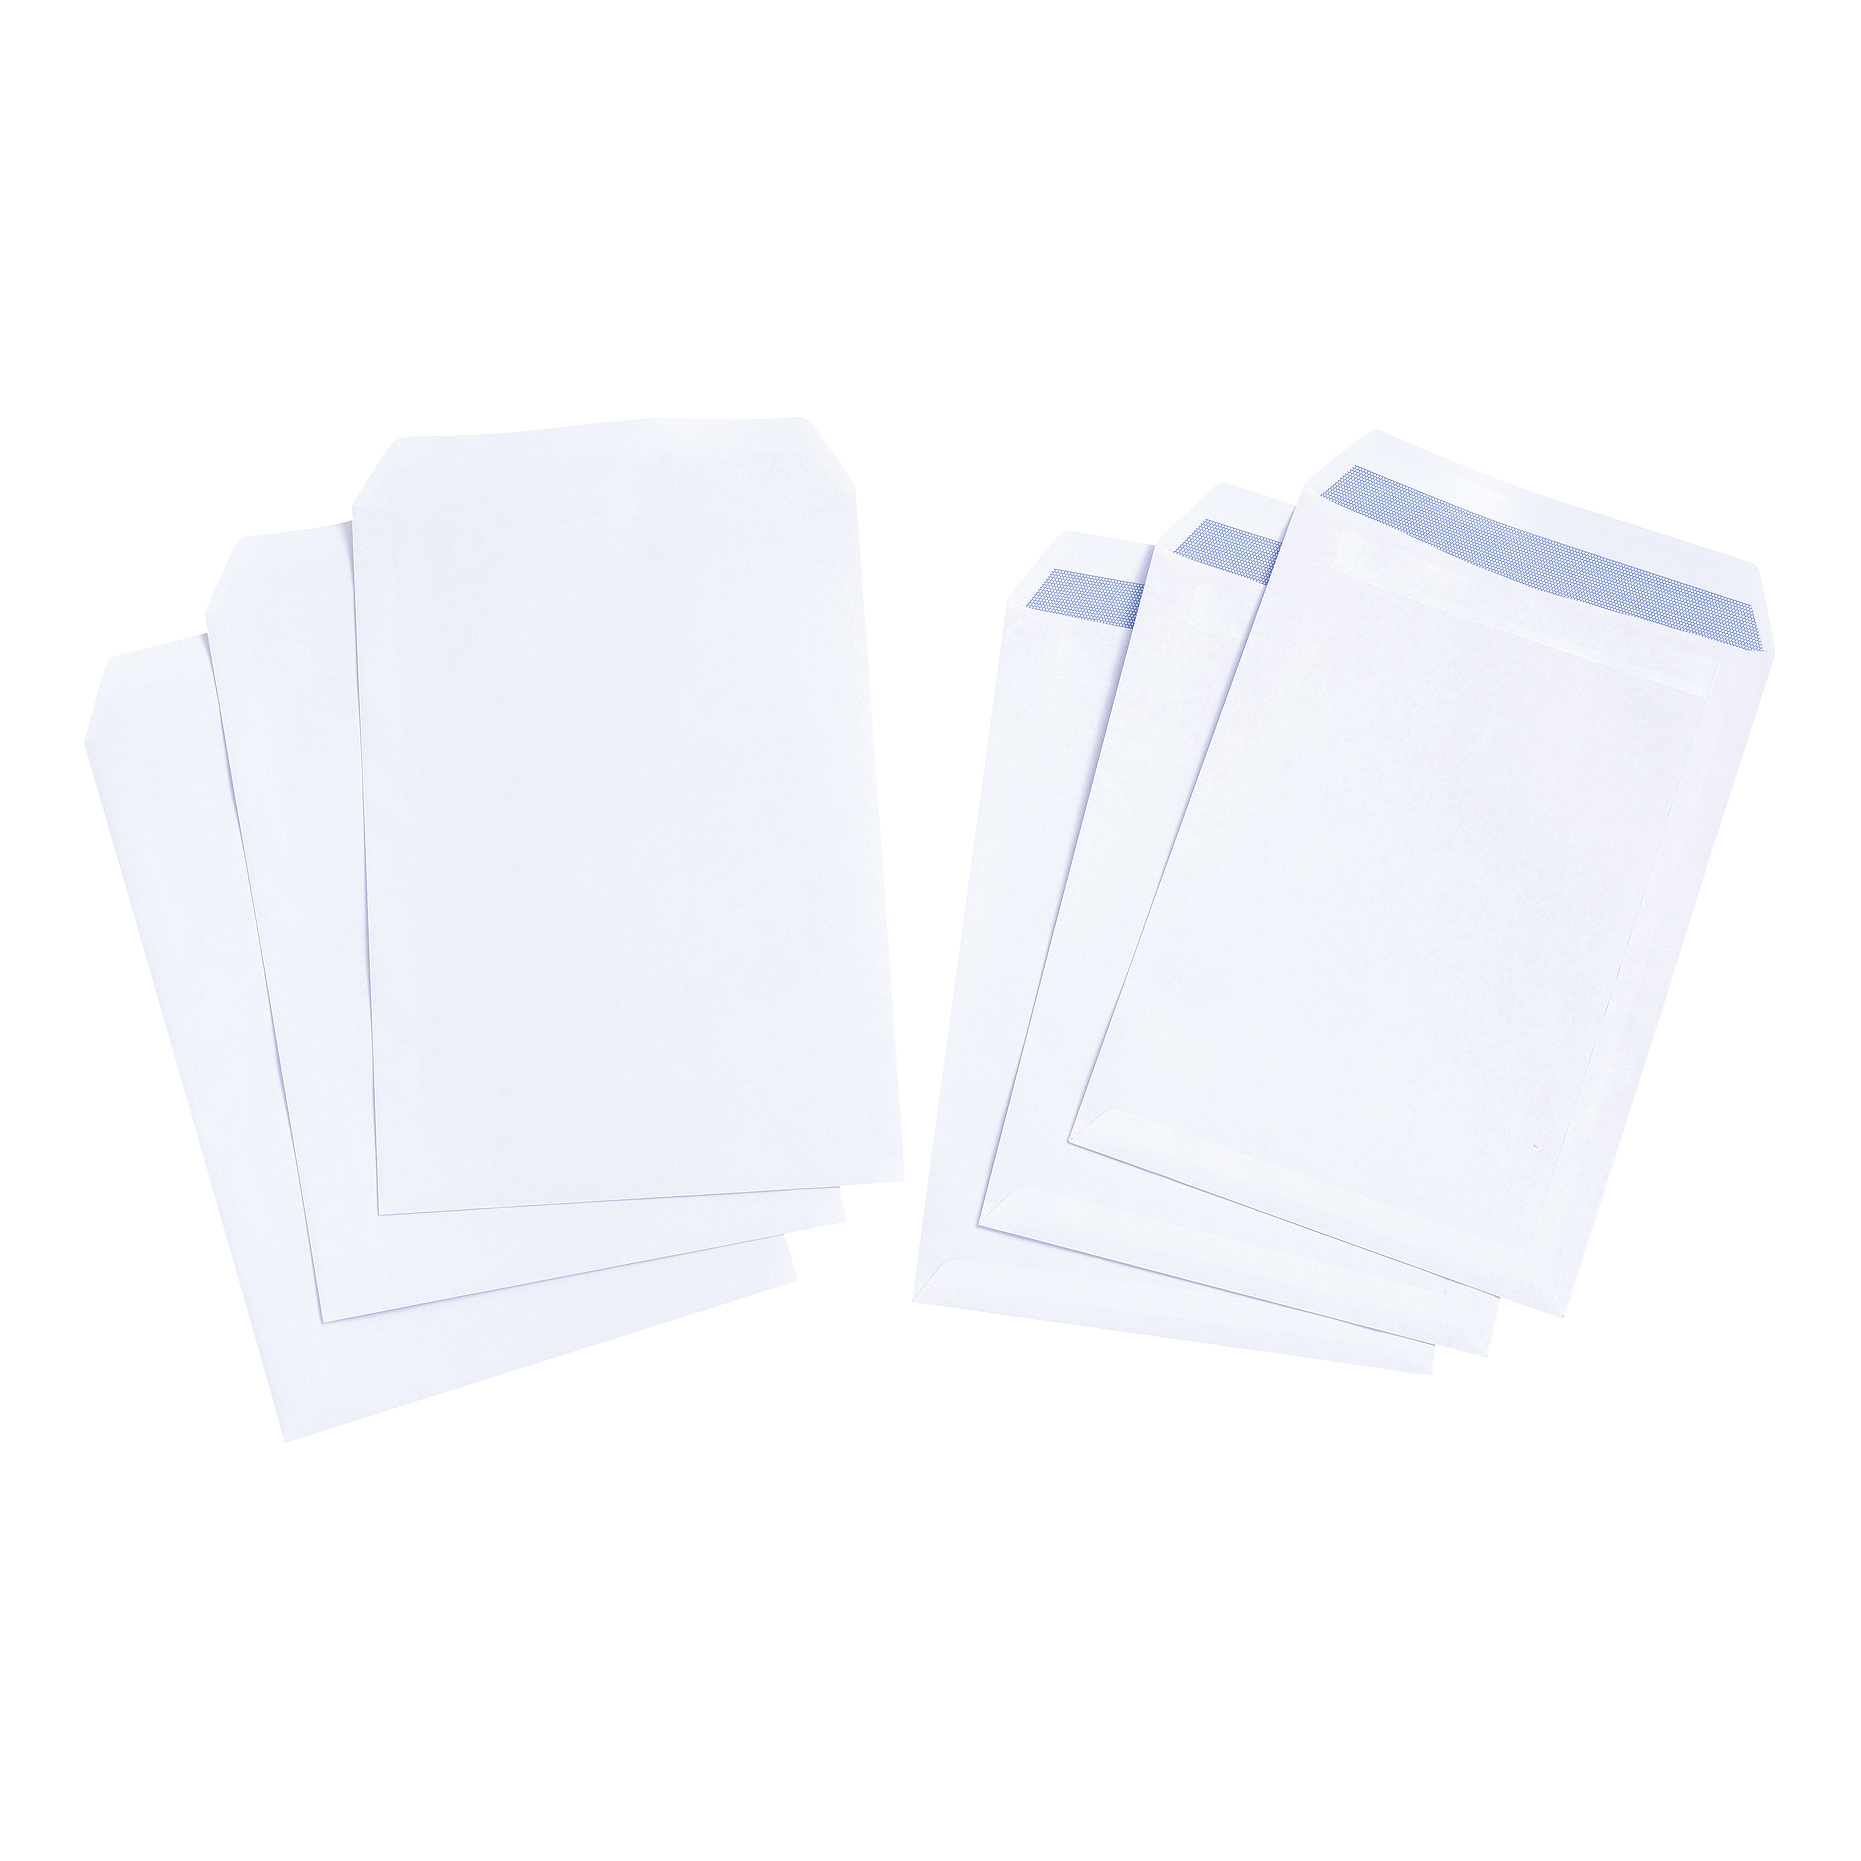 Everyday Envelopes 5 Star Value Envelope C4 Pocket Self Seal 90gsm White Pack 250